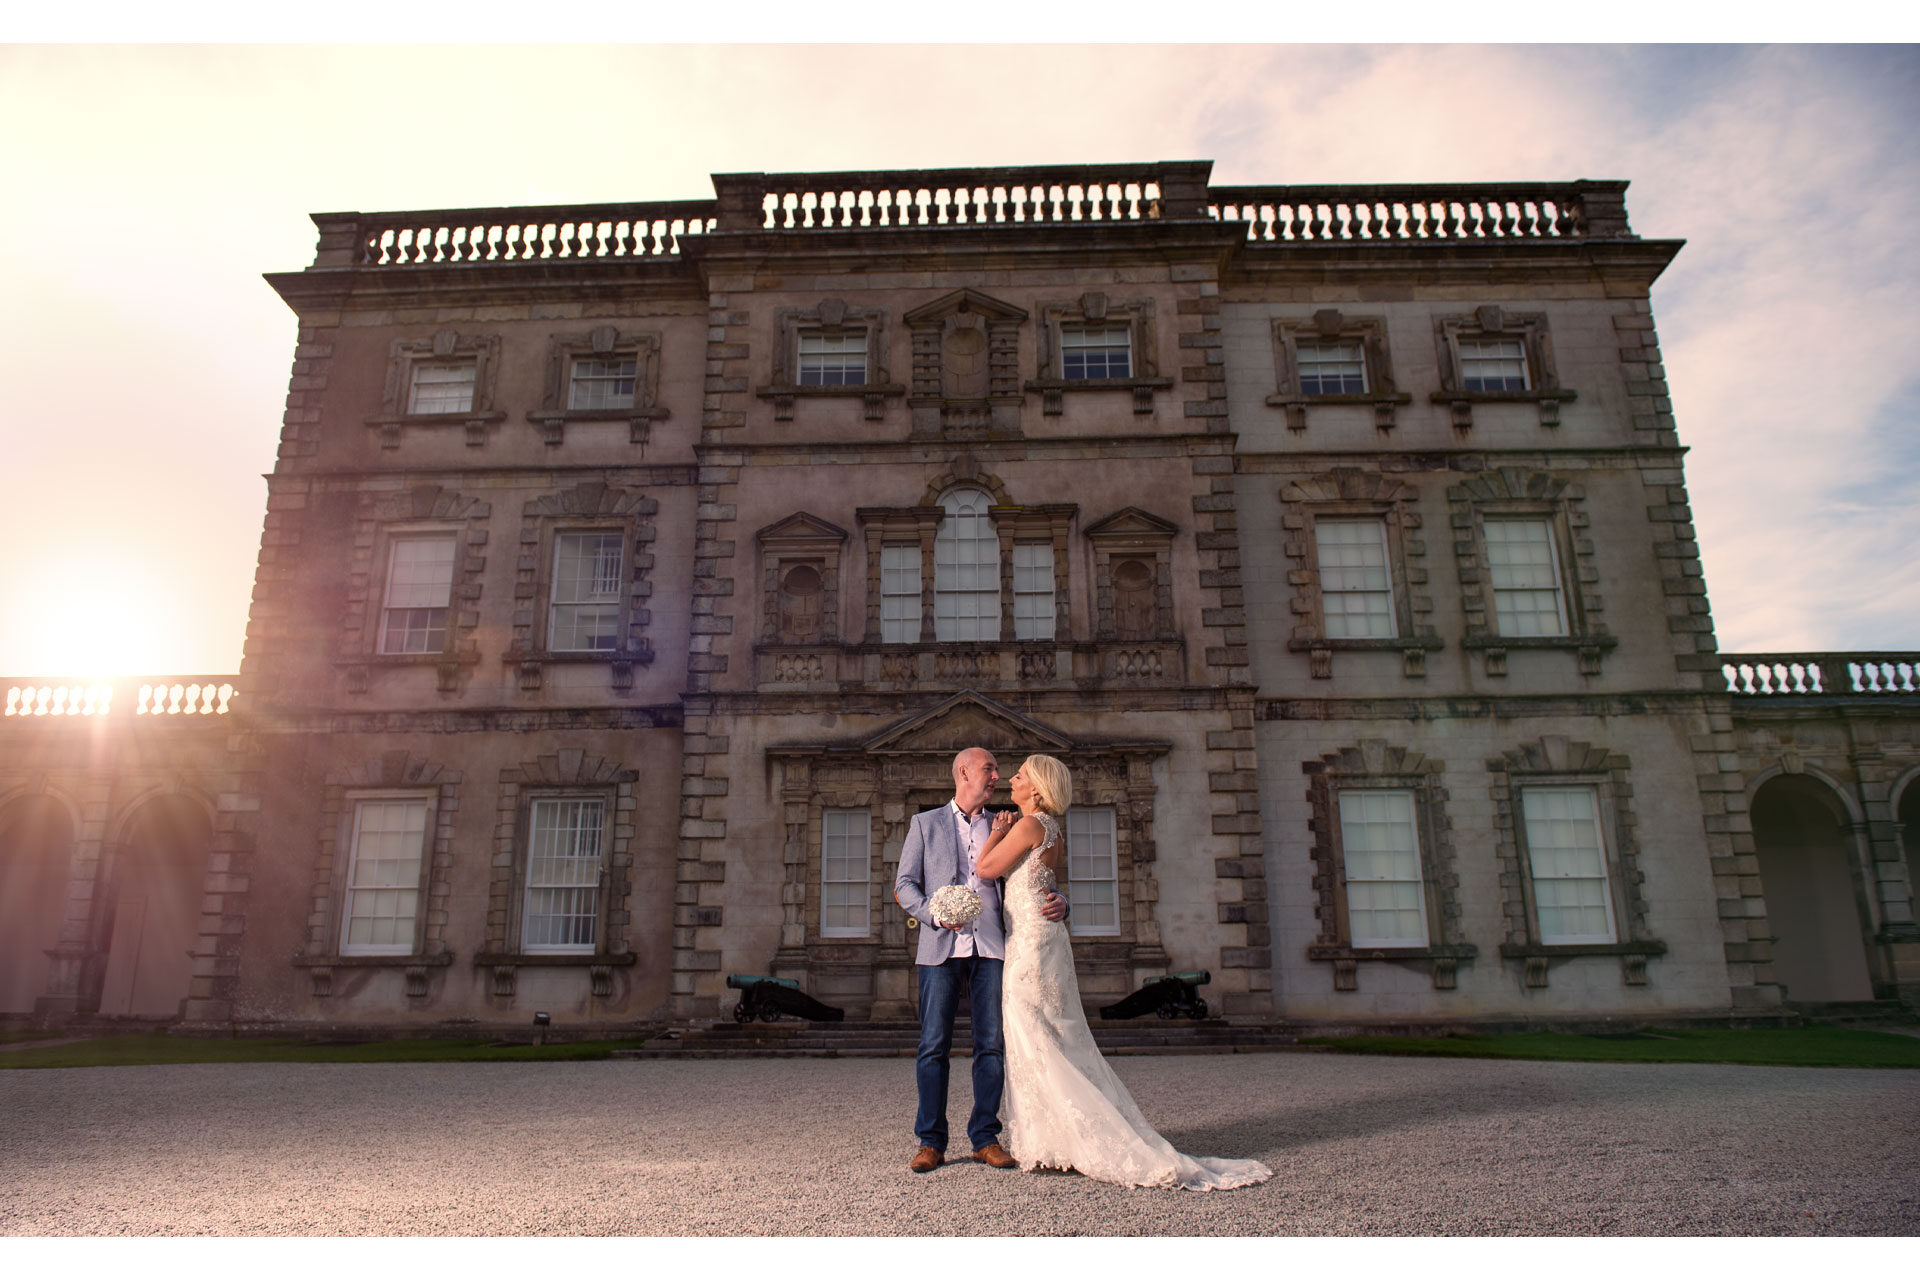 Photo of Lorraine and Kieran captured as they celebrated their home wedding at Florencecourt House, Enniskillen, Co. Fermanagh, Northern Ireland.